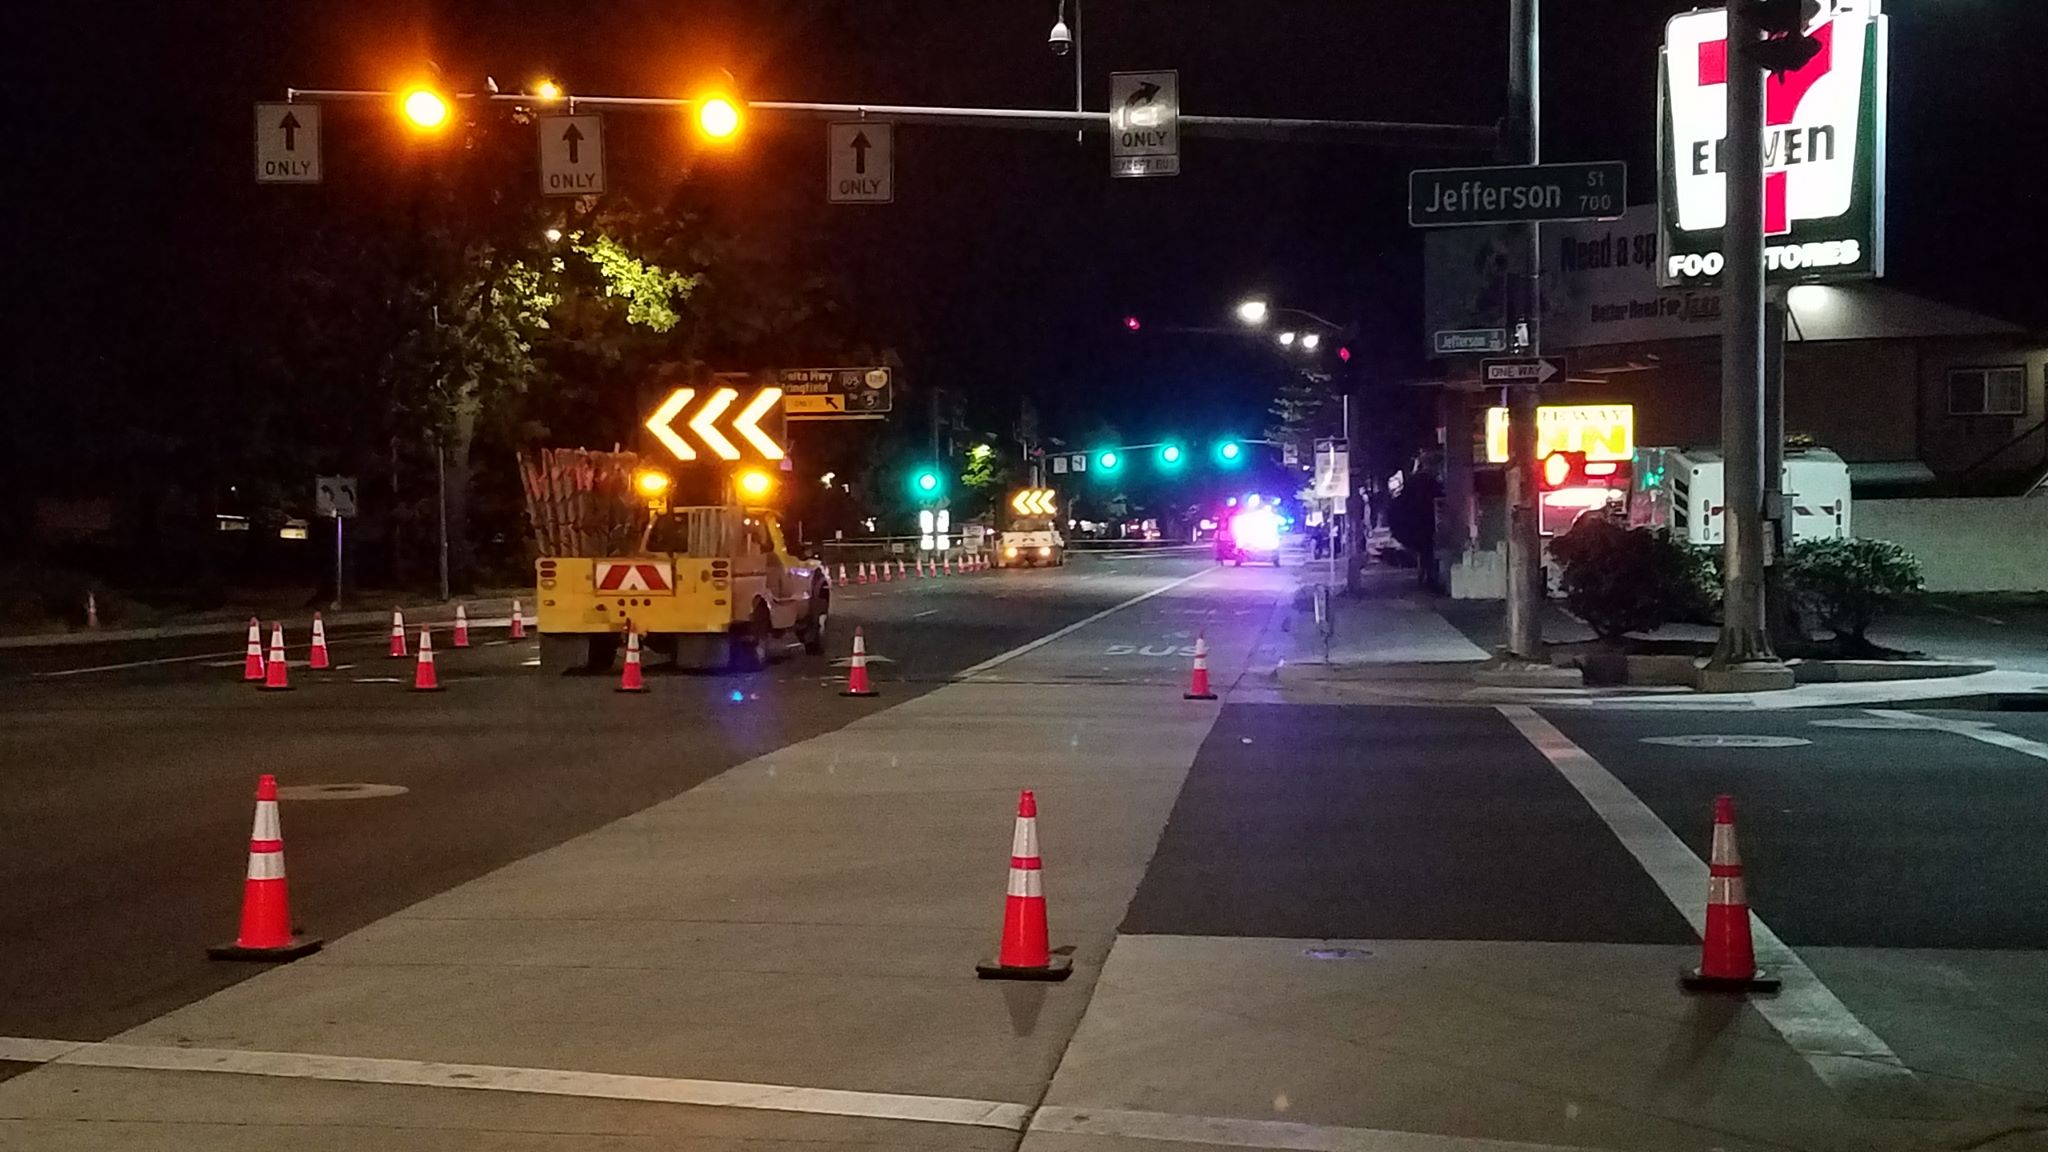 An early morning crash in Eugene resulted in one fatality, police said. (SBG)